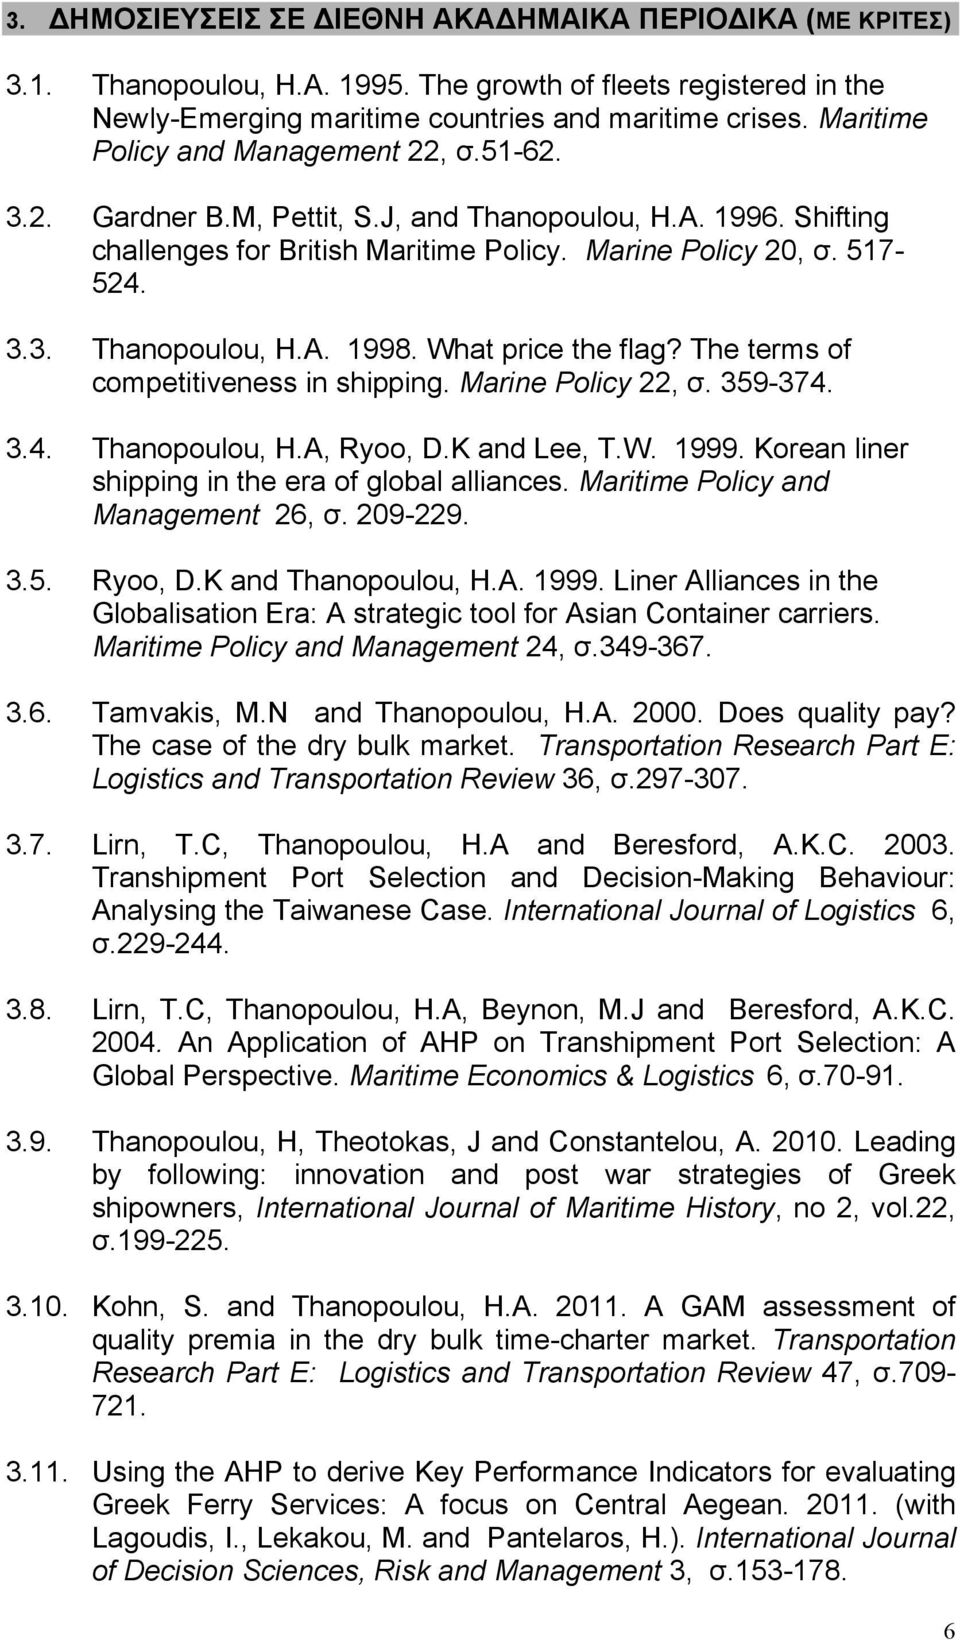 What price the flag? The terms of competitiveness in shipping. Marine Policy 22, σ. 359-374. 3.4. Thanopoulou, H.A, Ryoo, D.K and Lee, T.W. 1999. Korean liner shipping in the era of global alliances.